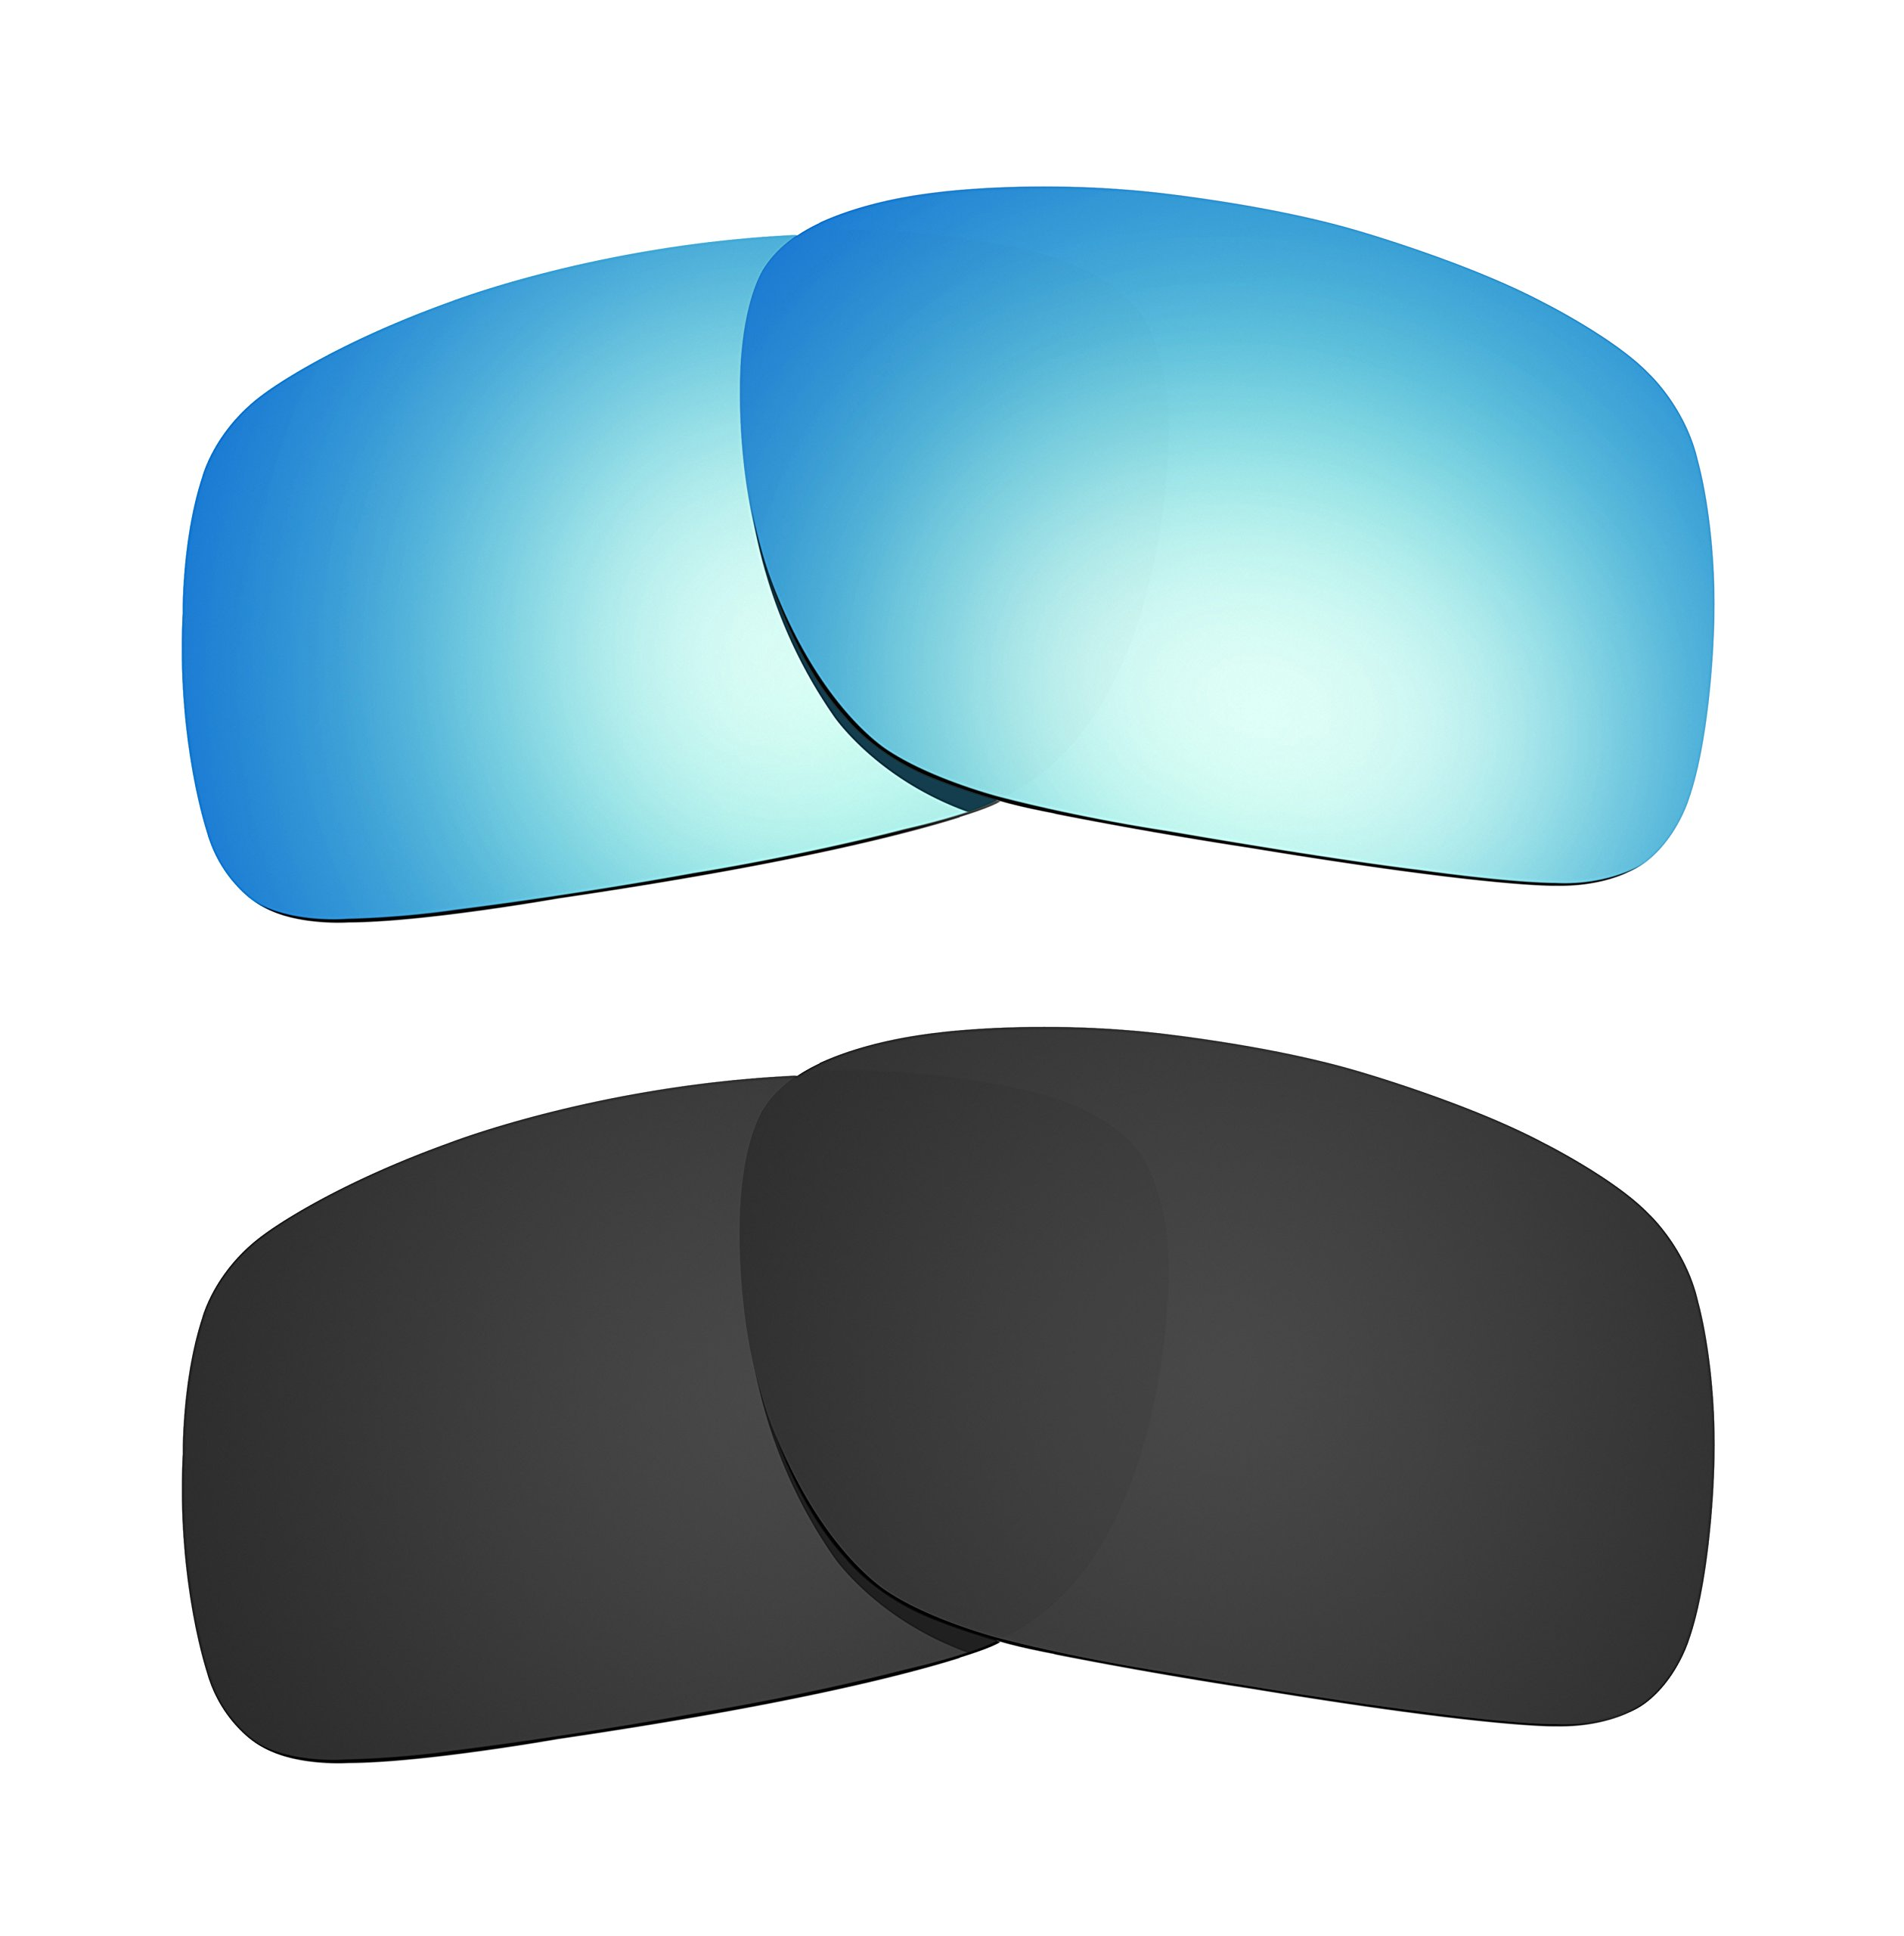 Littlebird4 2 Pairs Polarized Replacement Lenses for Oakley Turbine Sunglasses - Multiple Options (Black-Ice Blue) by Littlebird4 (Image #1)